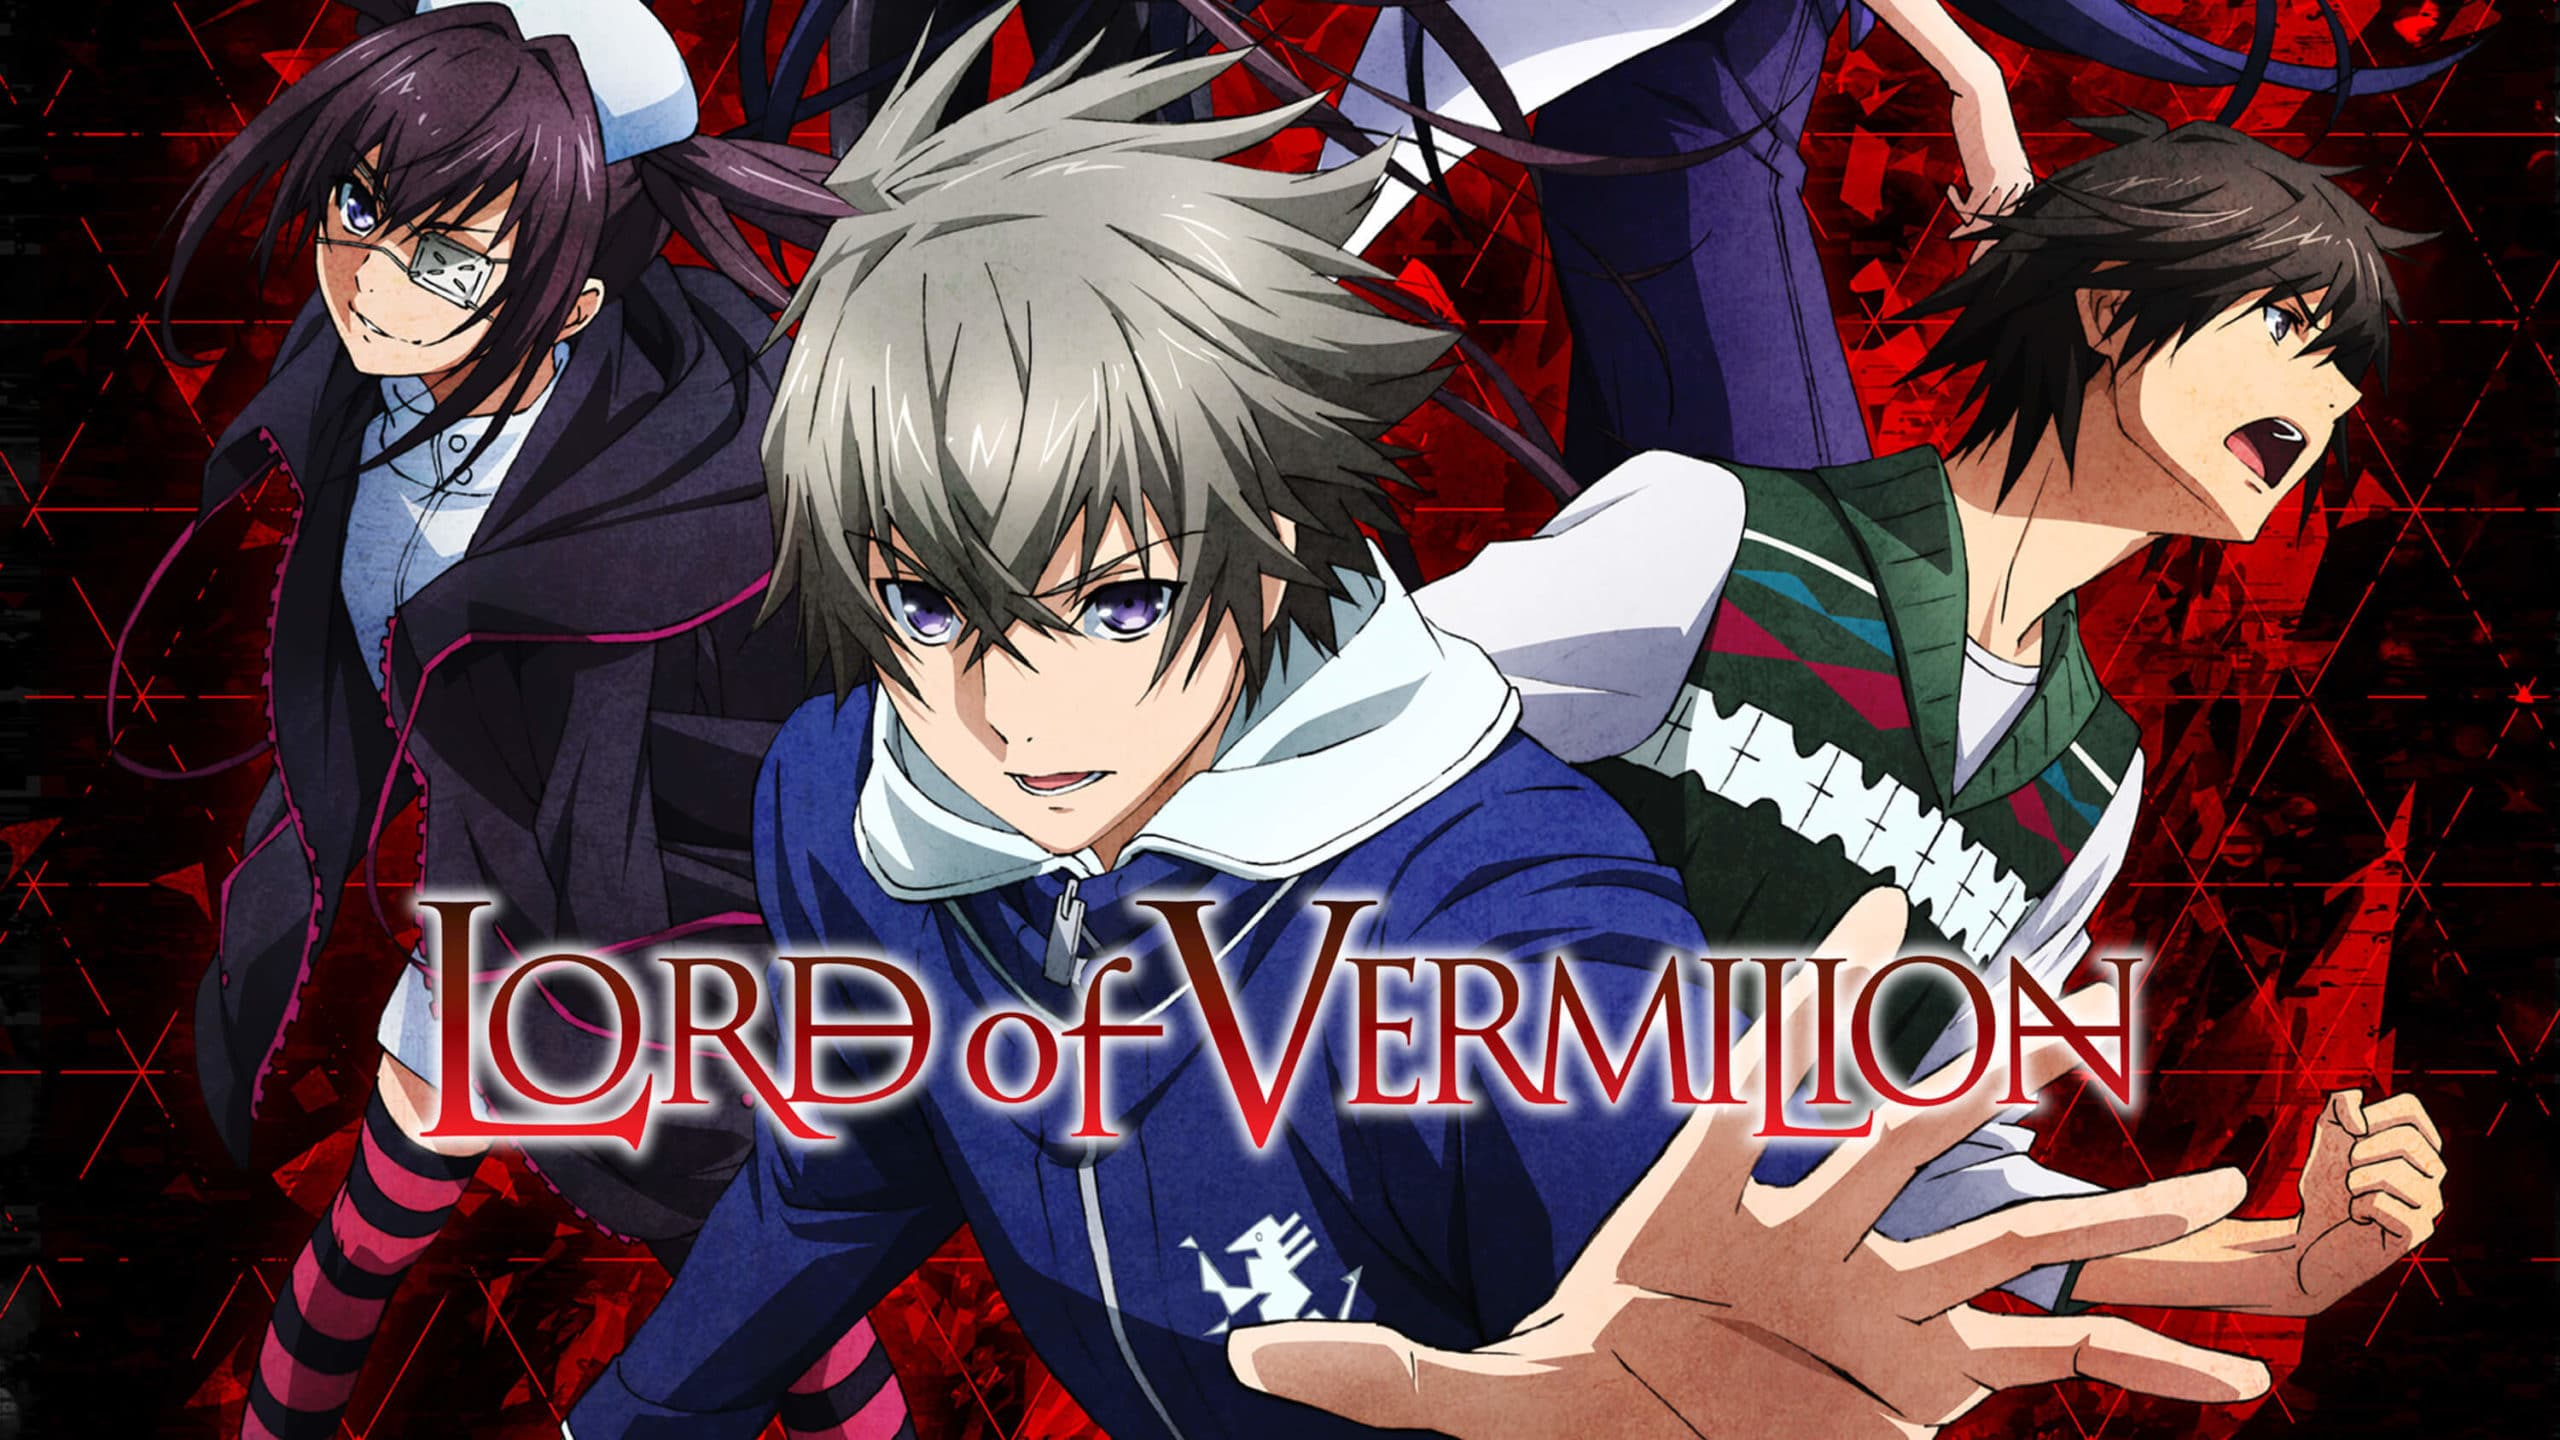 Lord of Vermilion: Guren no Ou Sub Indo